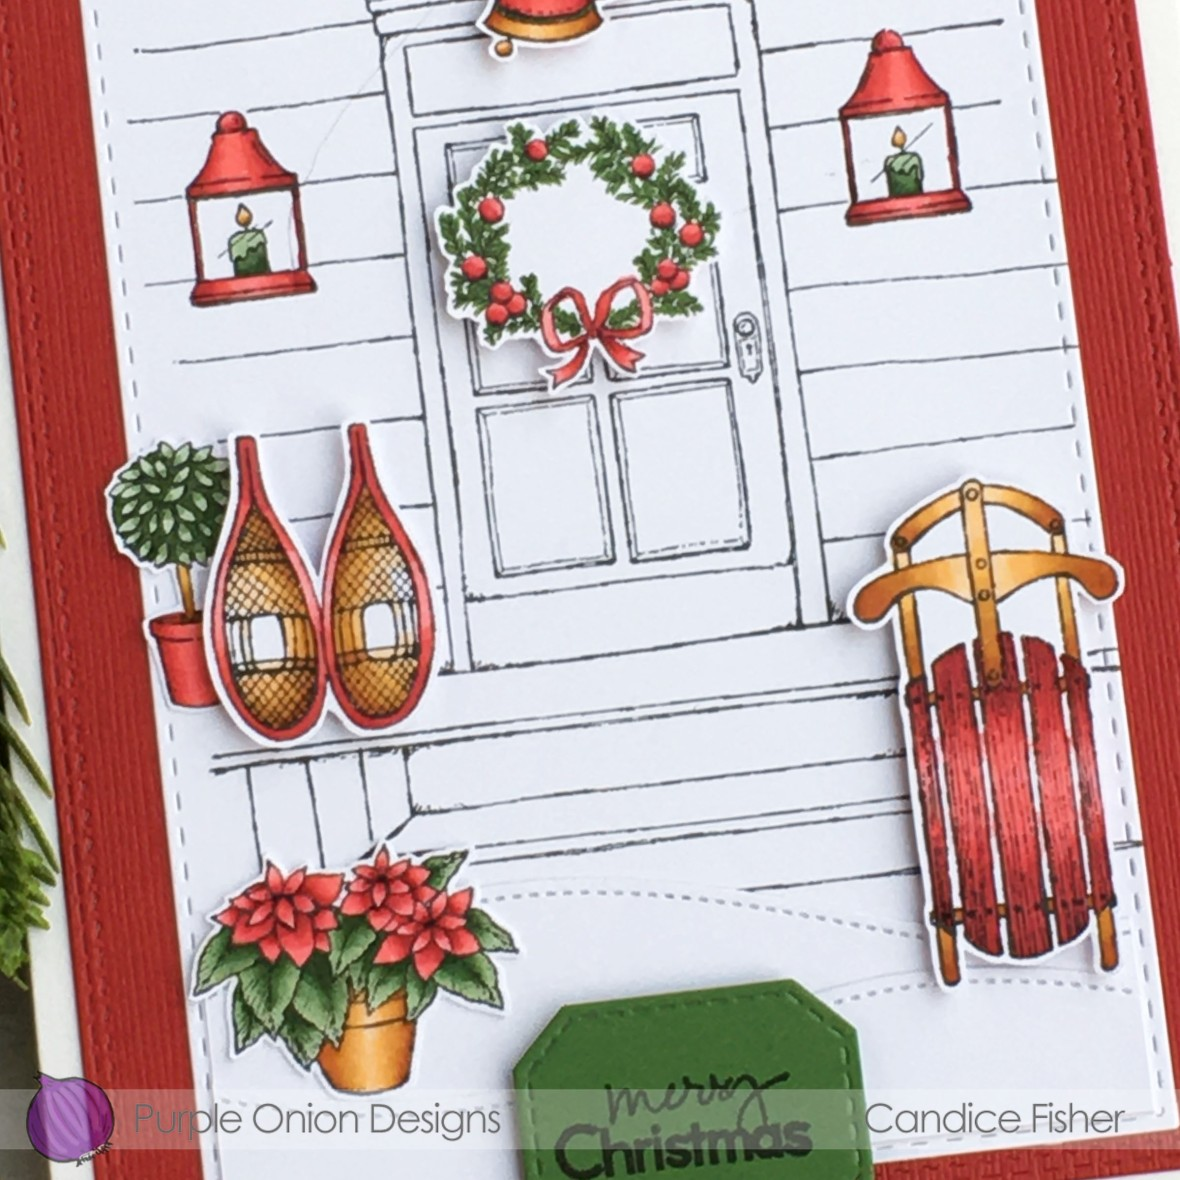 Candice Fisher-front door, door decor #1, winter sports close up